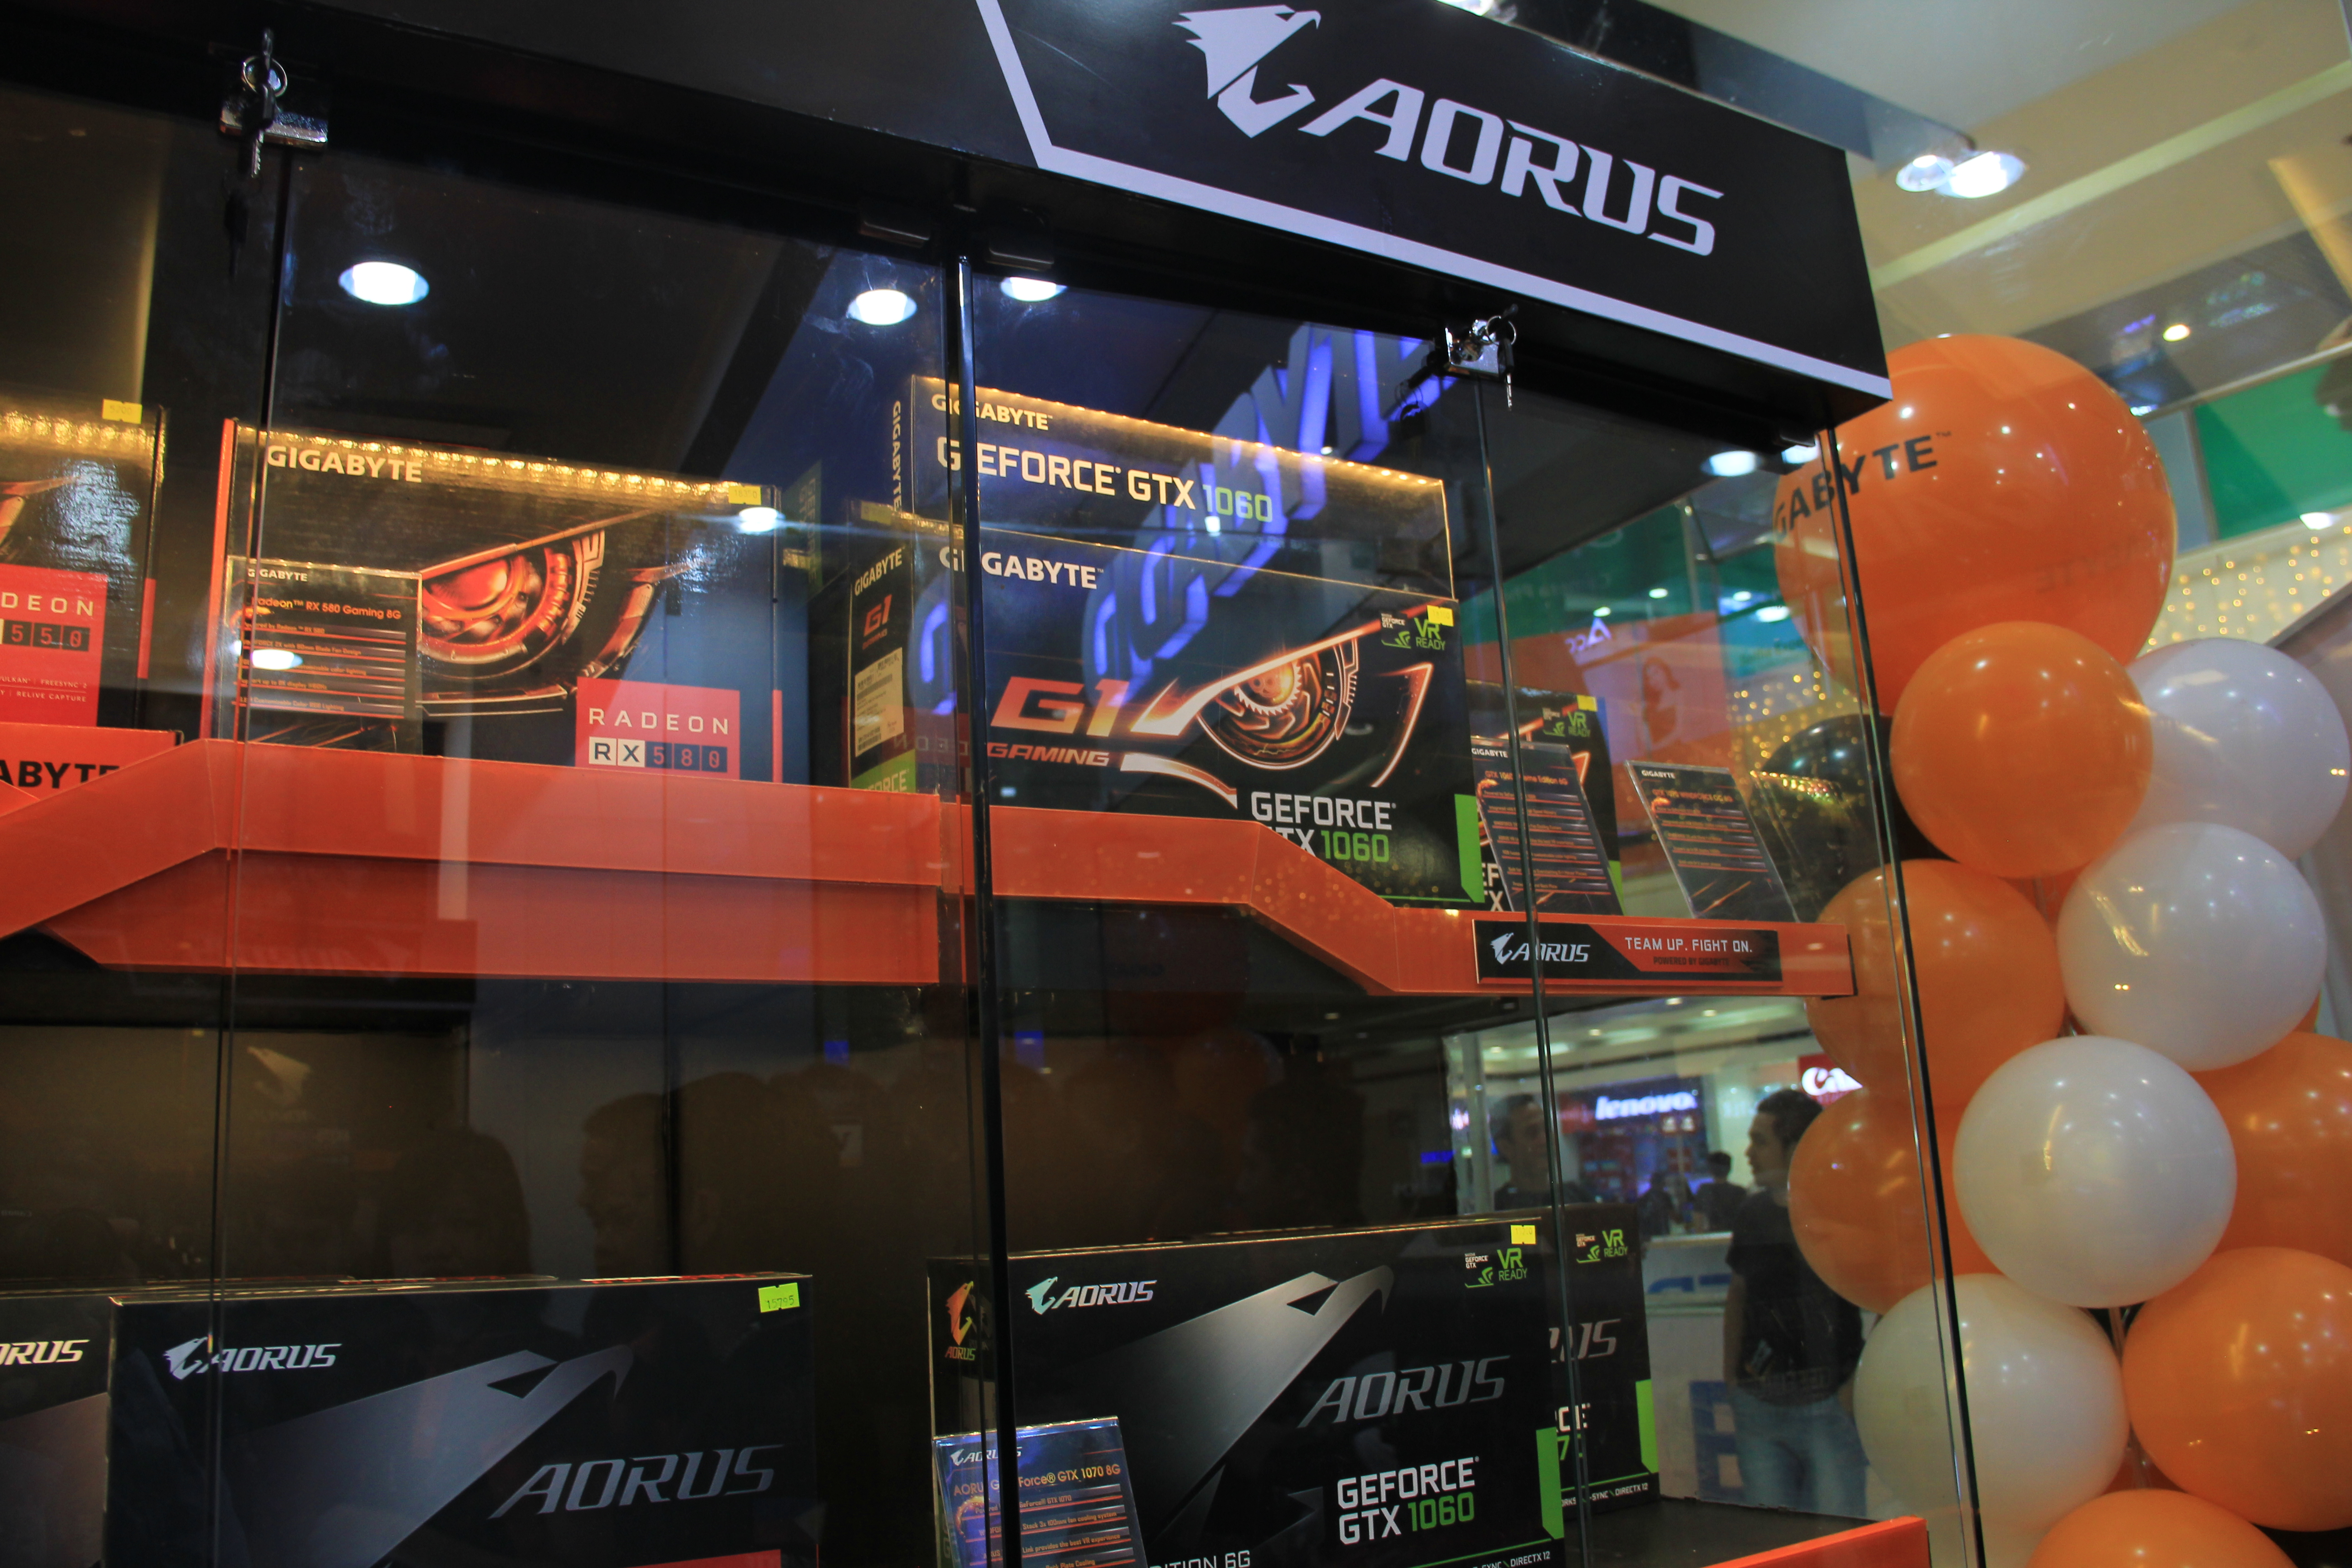 amd ryzen, 8th generation intel core, gigabyte, pcworx, sm north edsa, z370, aorus, motherboards, tekken 7, nvidia, geforce, gt 1050, graphics cards, concept store